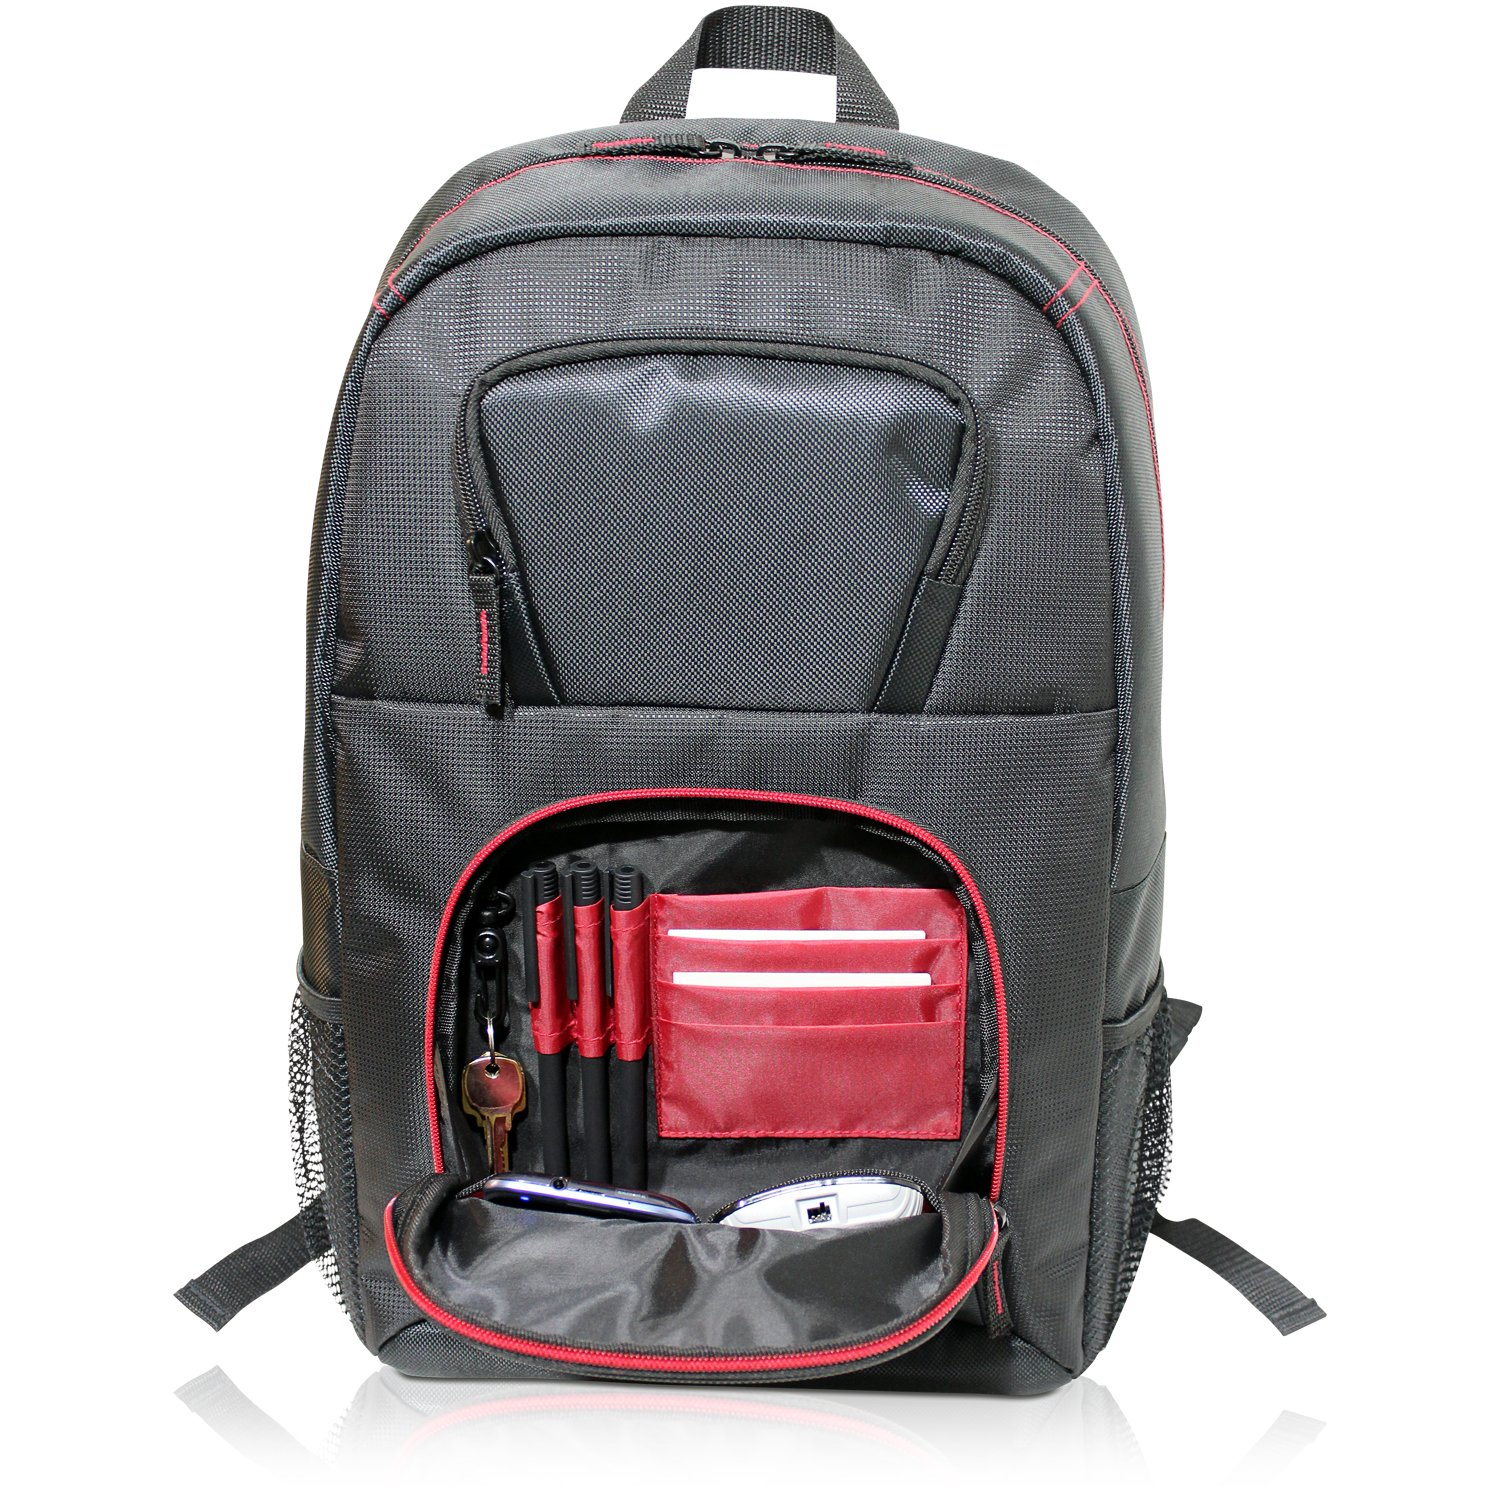 V7 16.1 Vantage Laptop Backpack for Business Professionals, College Students and Travelers Made of Water Resistant Polyester – CBV21RT-9N